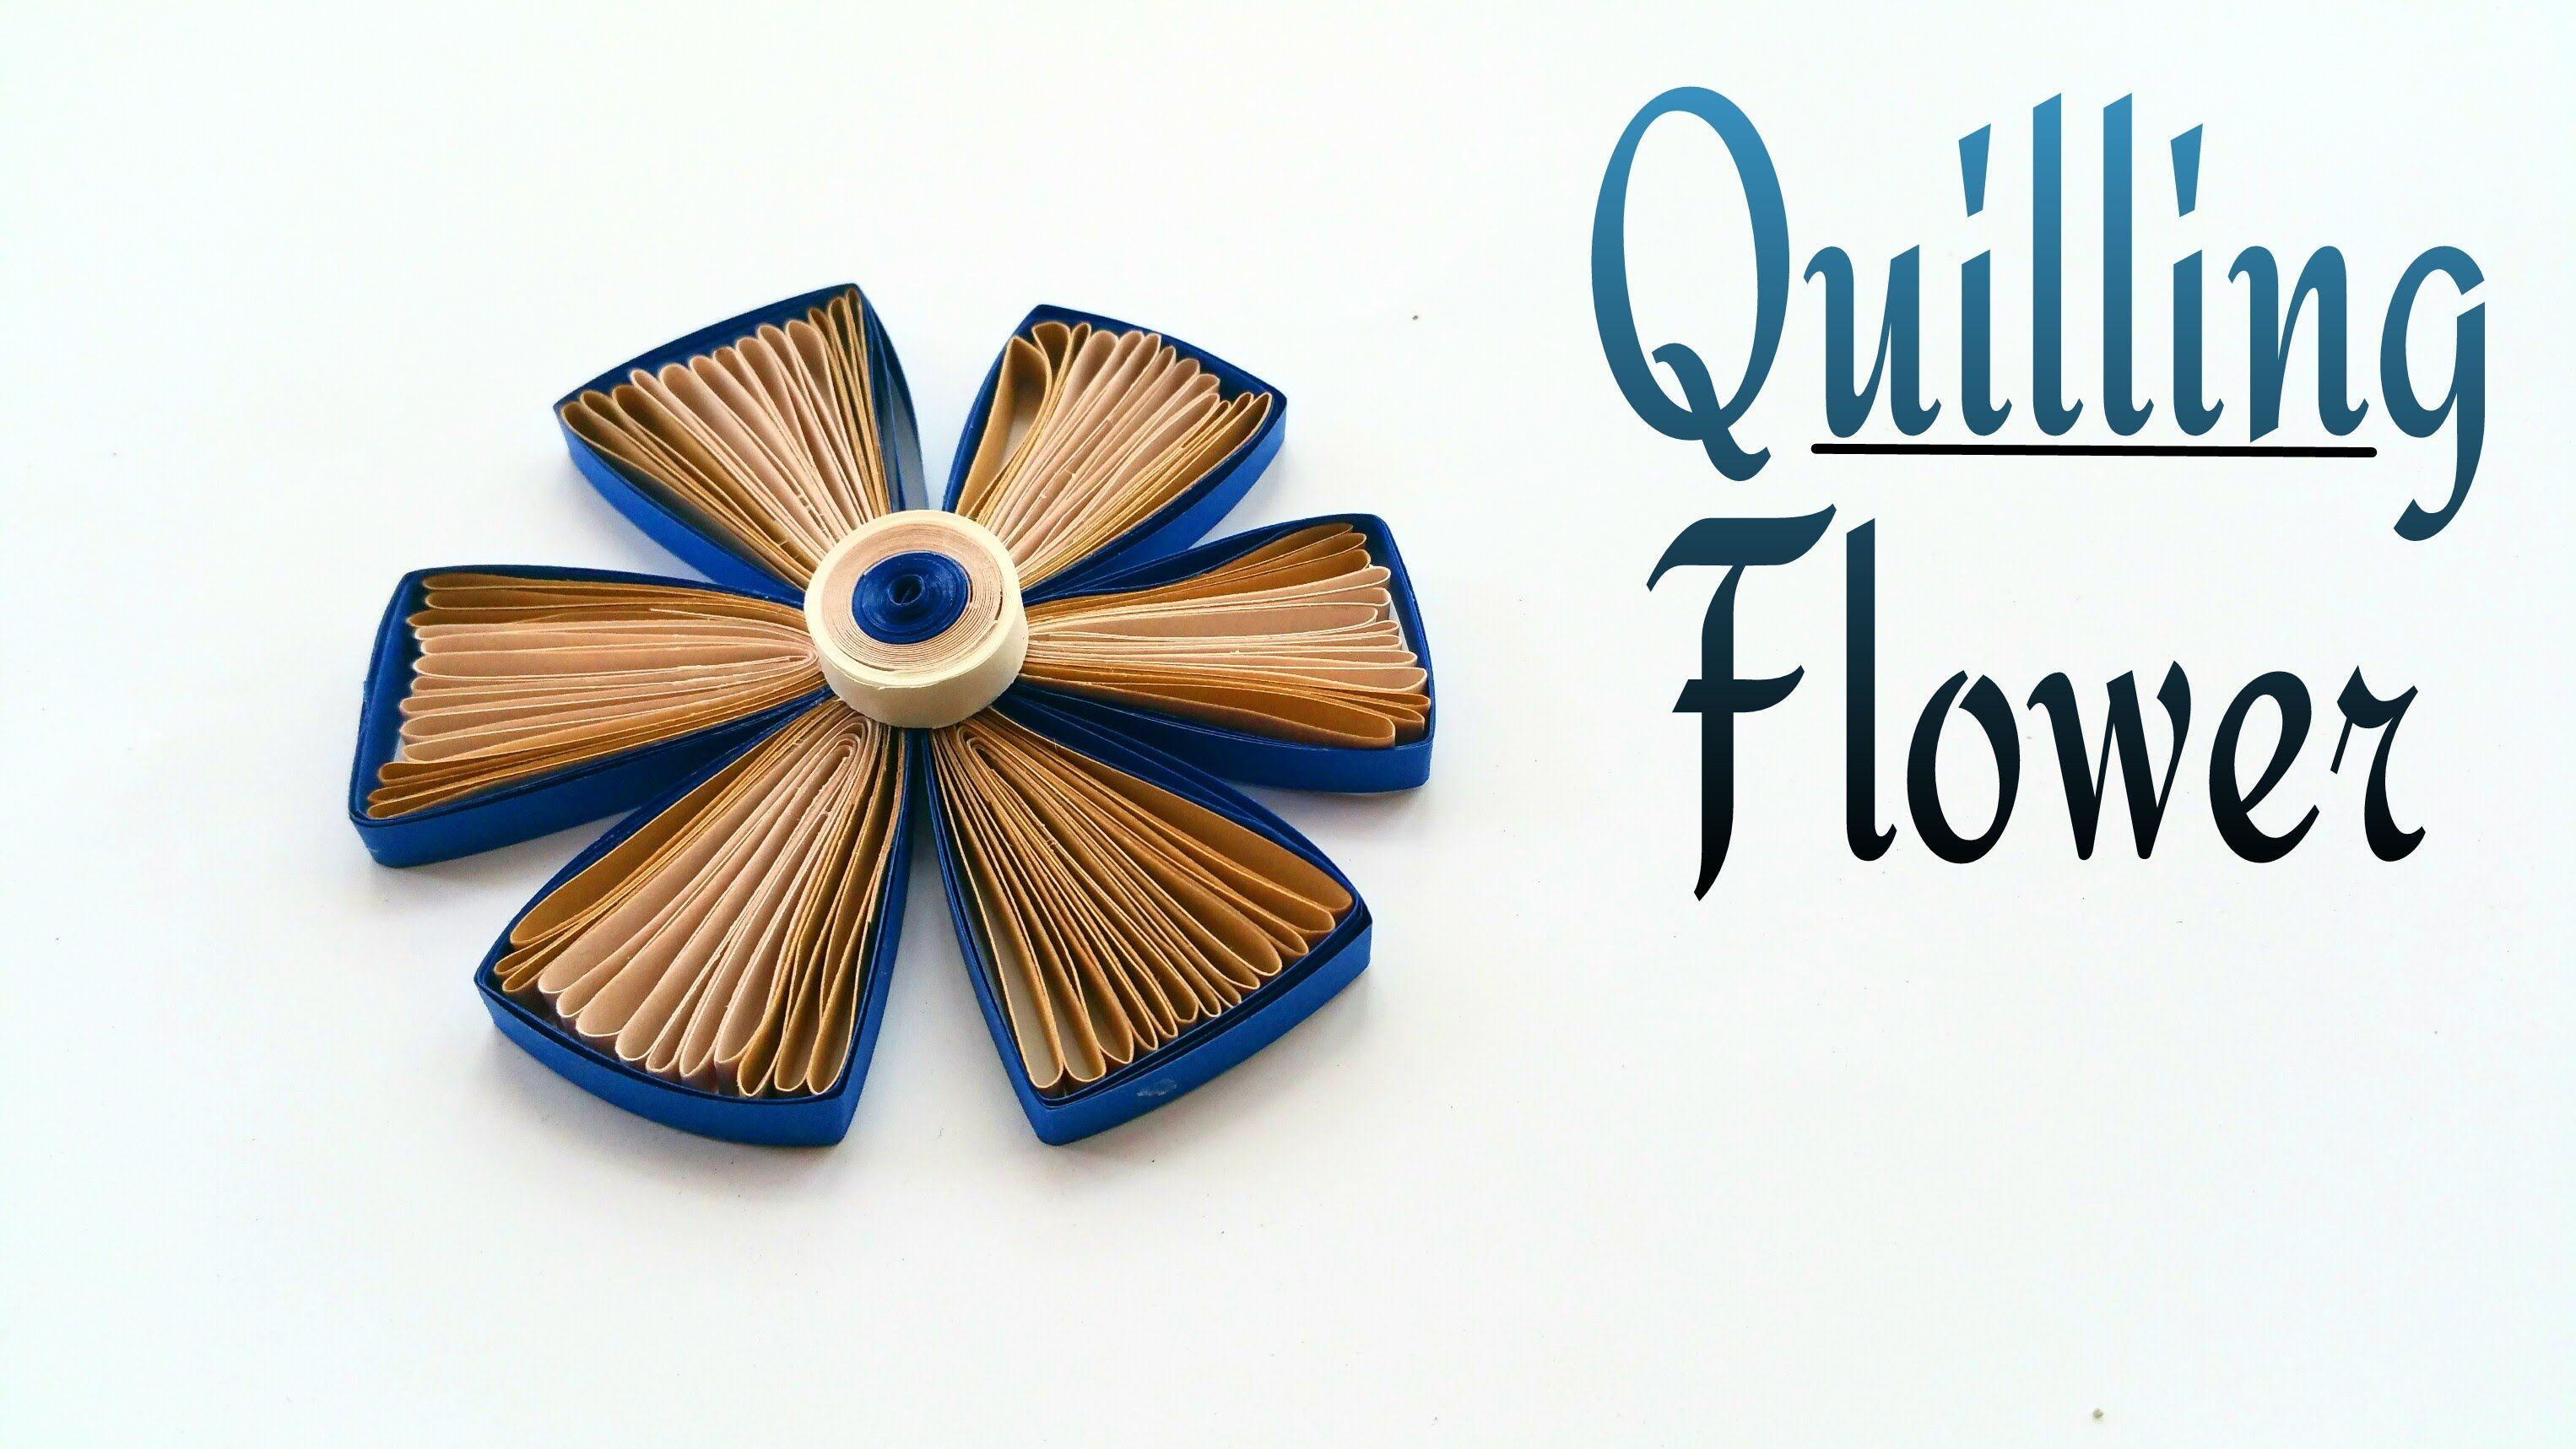 How to make a beautiful paper quilling flower design 2 craft how to make a beautiful paper quilling flower design 2 craft tutorial izmirmasajfo